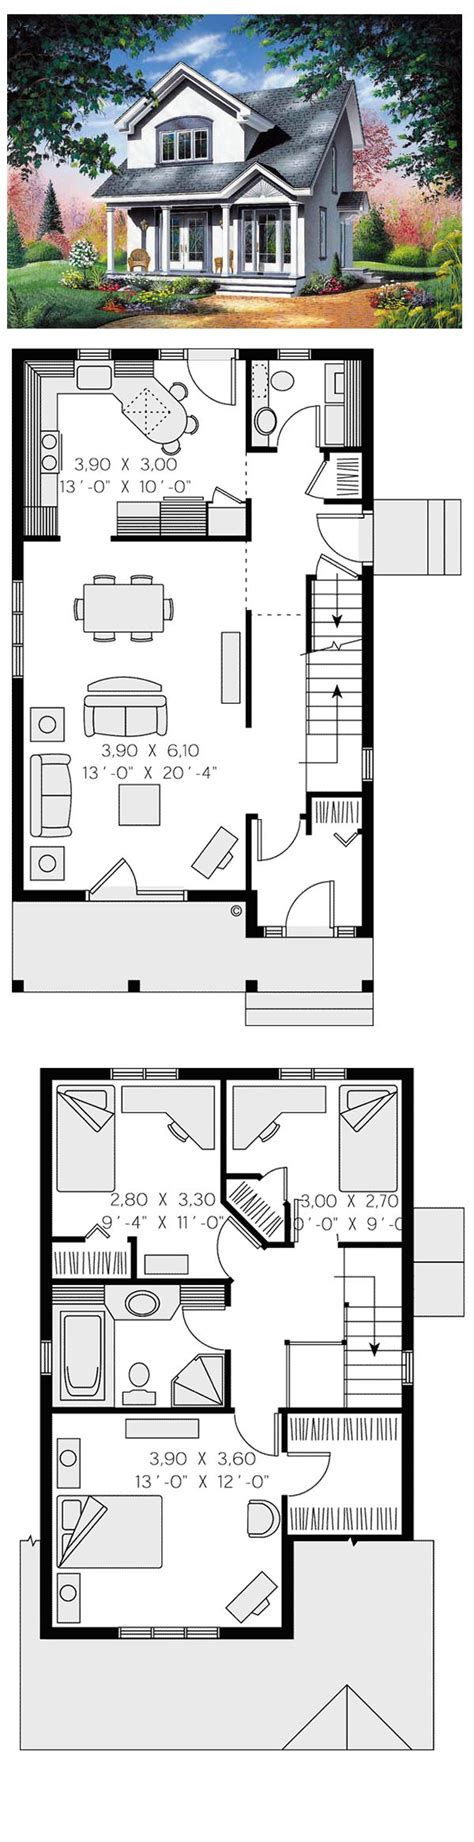 best 25 small apartment plans ideas on pinterest studio best 25 small house layout ideas on pinterest small home